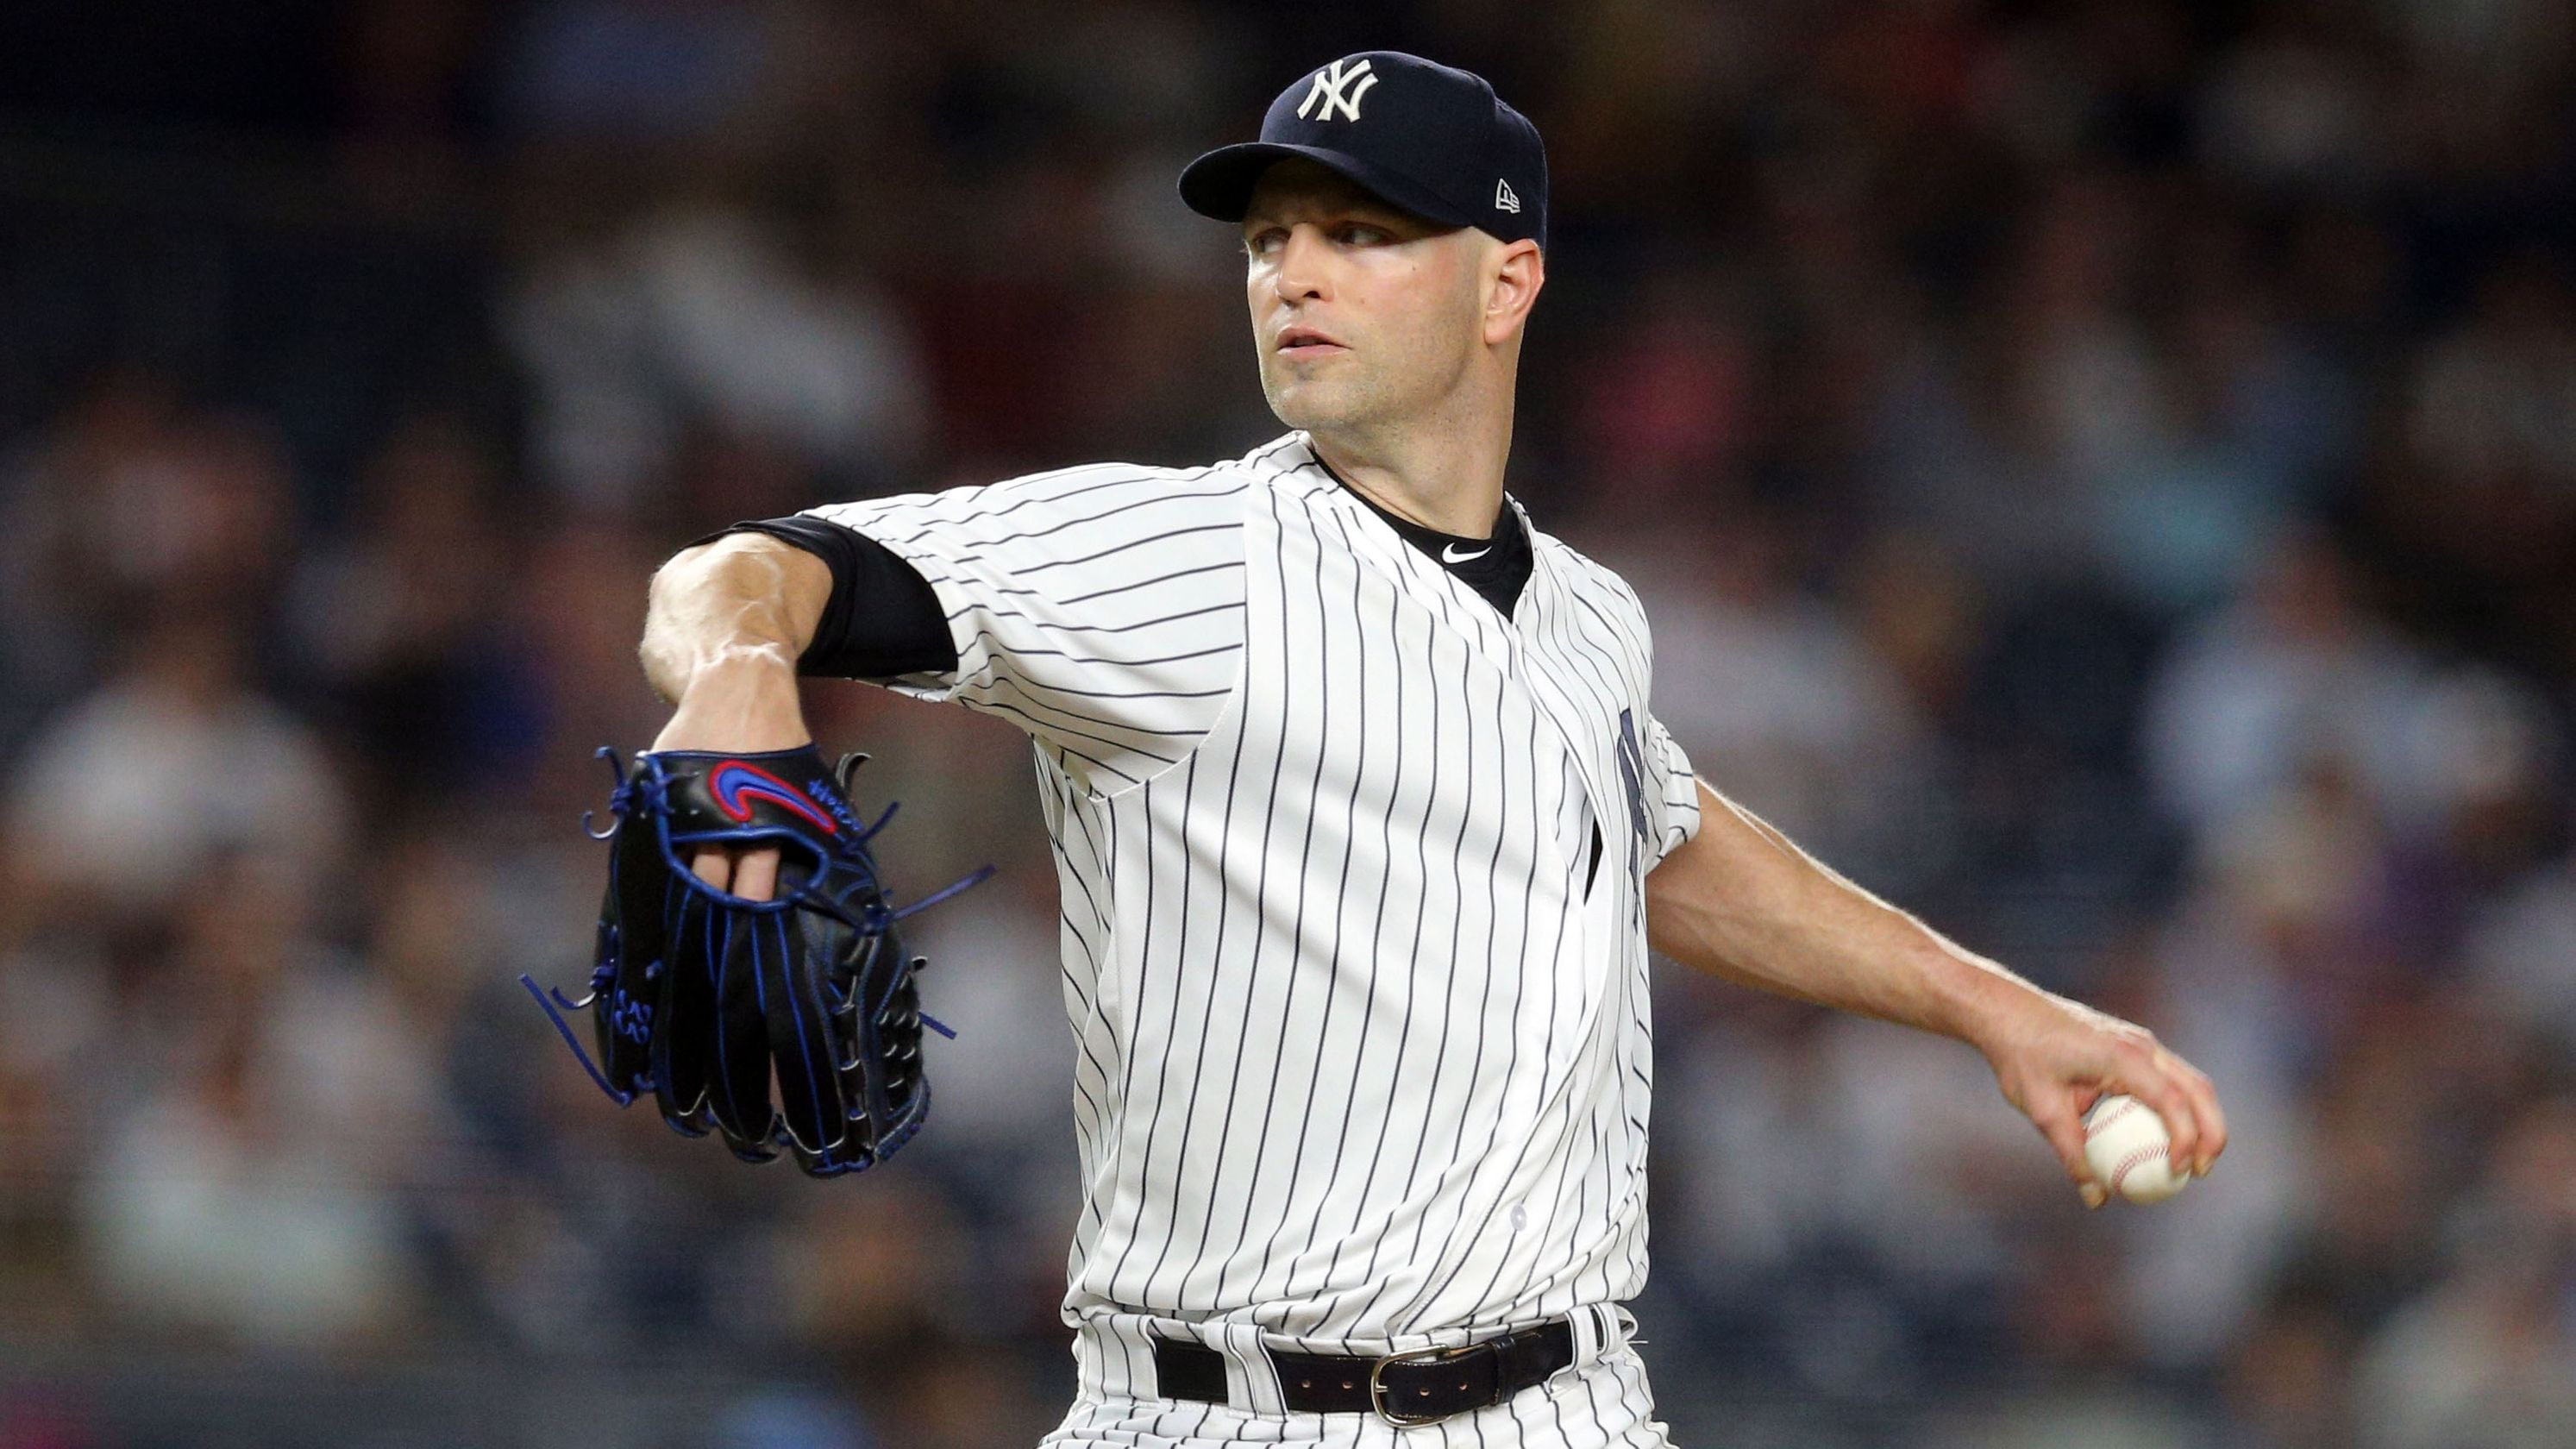 Yankees close to re-signing left-hander J.A. Happ; Manny Machado next?